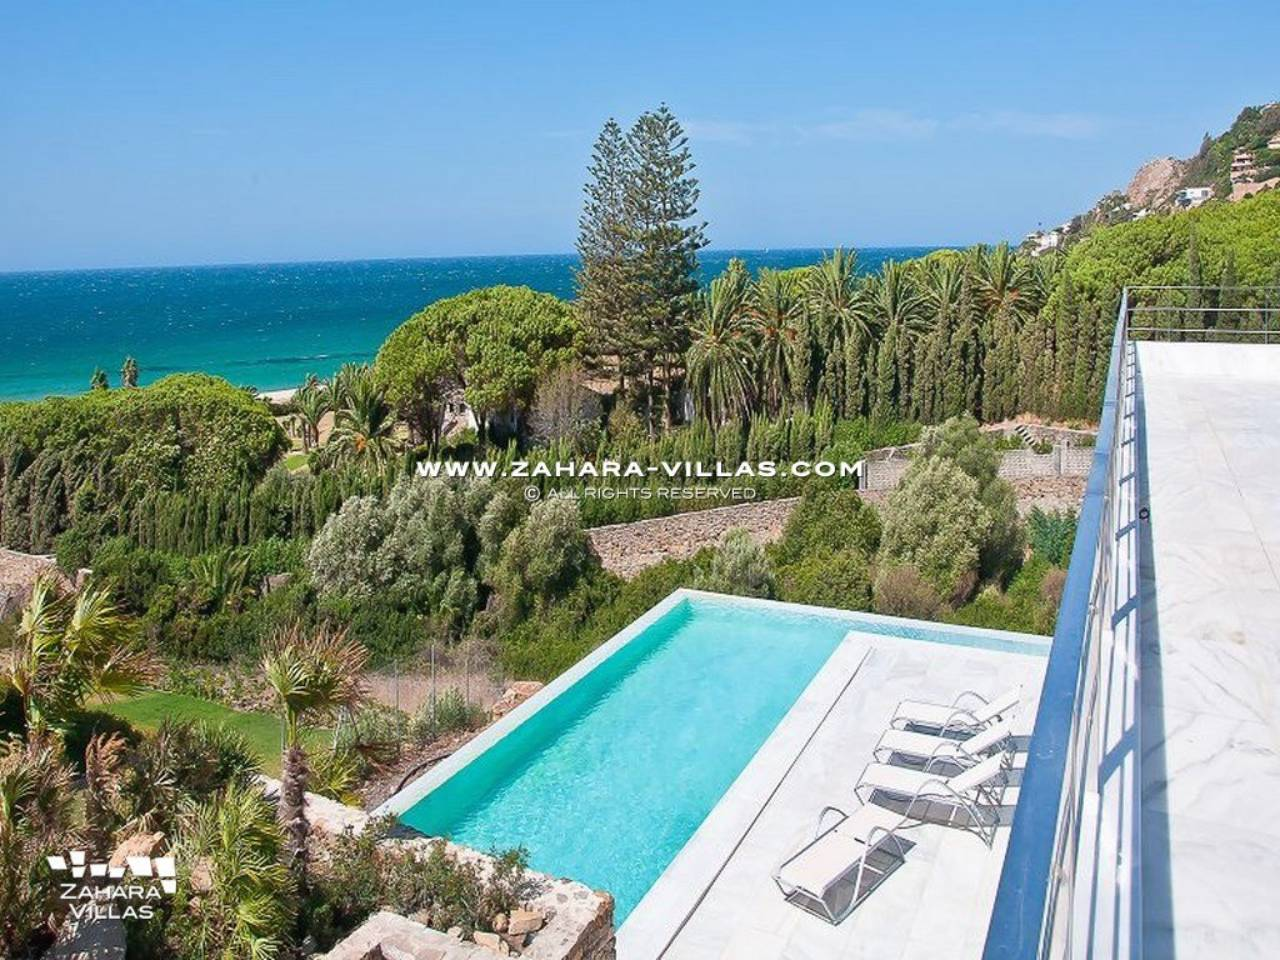 Imagen 1 de Wonderful Villa for sale with sea views in the beach Los Alemanes